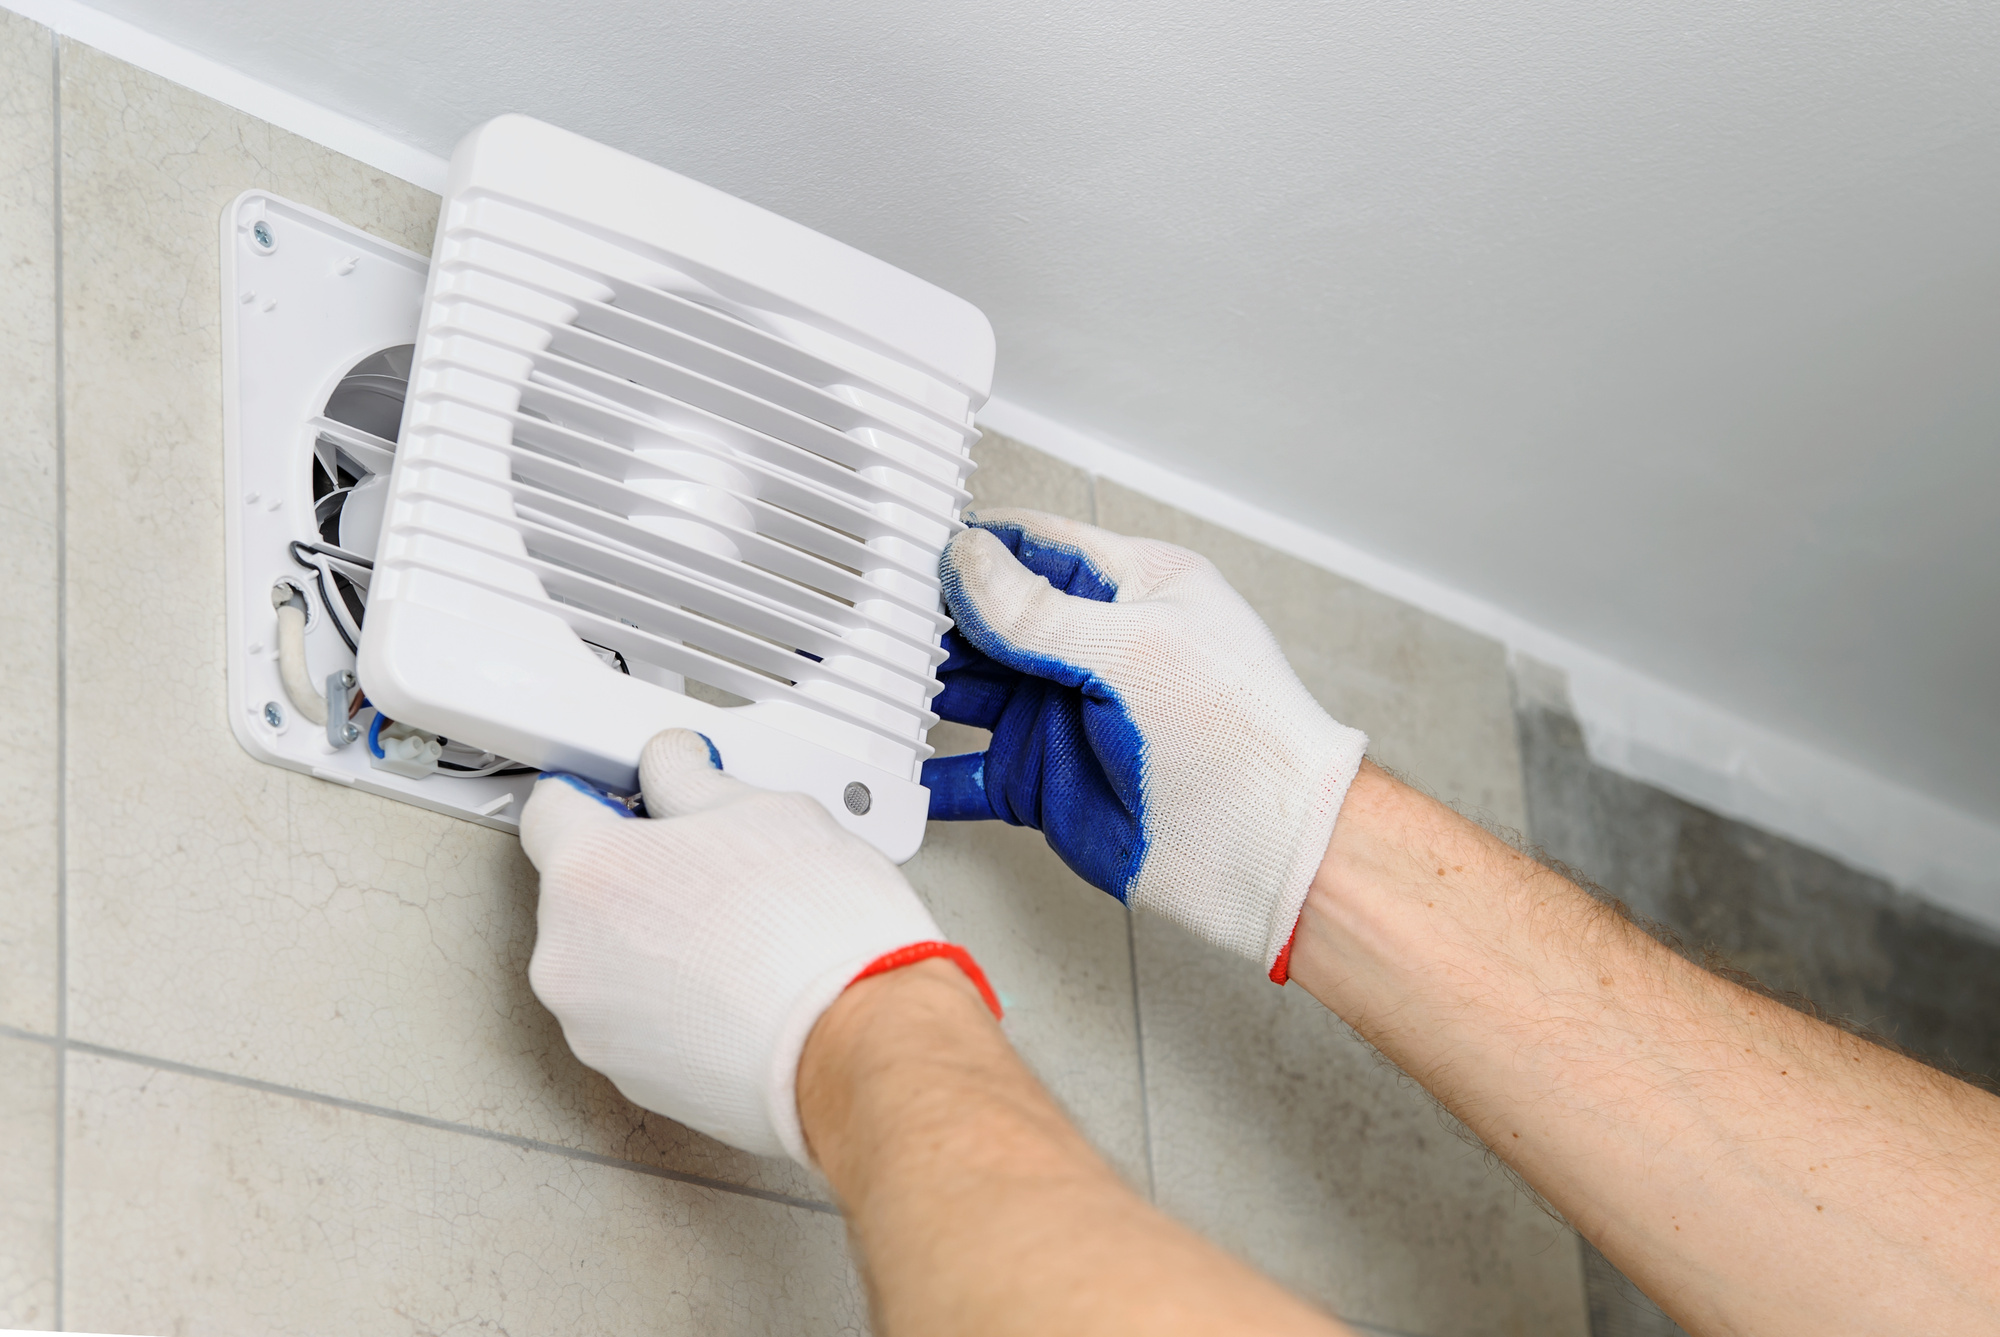 Essential tips for cleaning commercial exhaust fans for Bathroom exhaust fan cleaning service